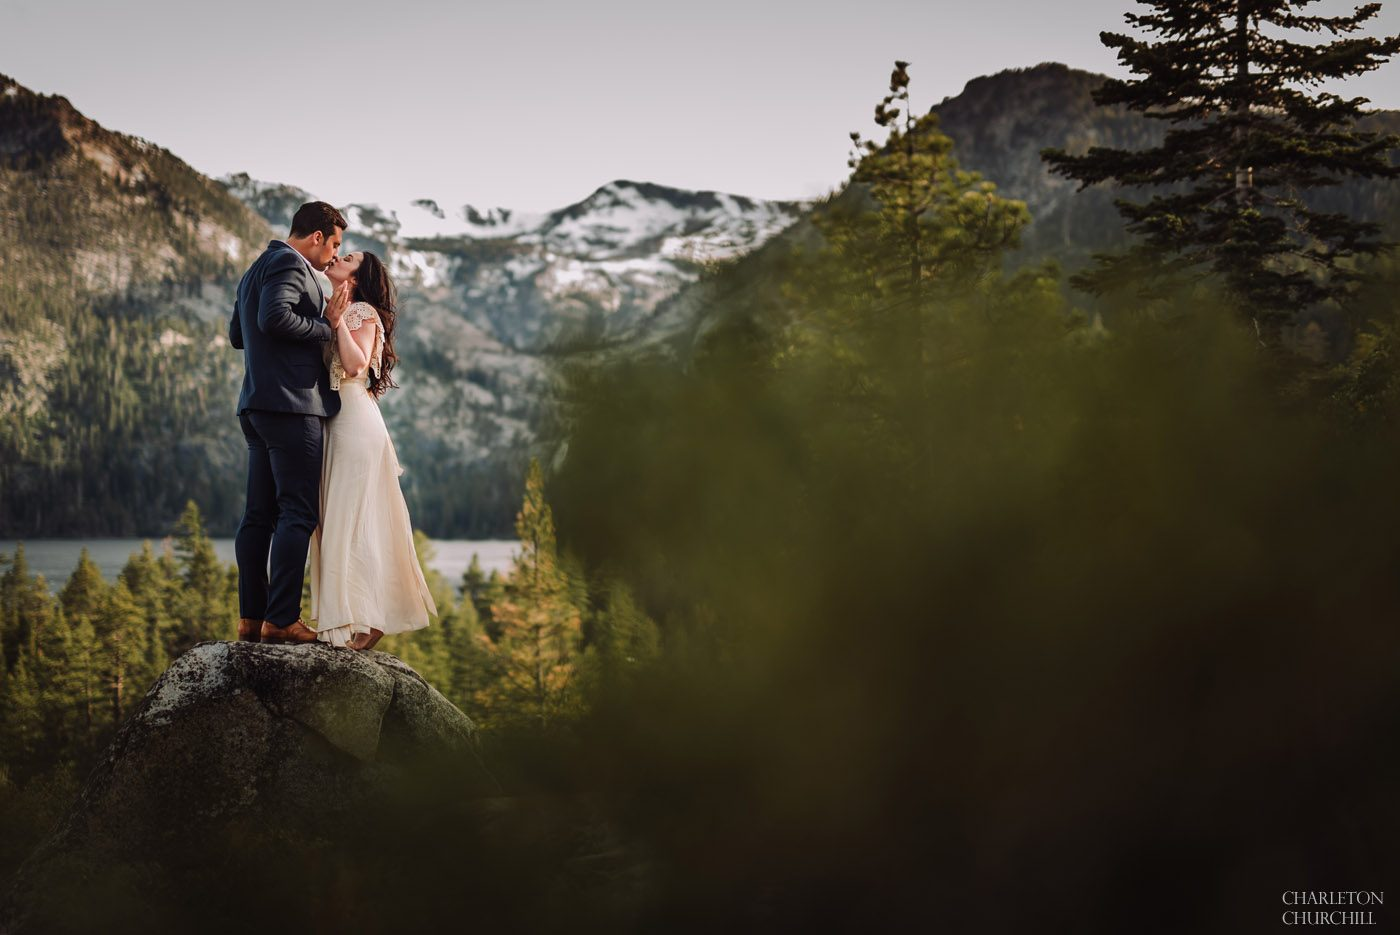 a glimpse of a tahoe wedding couple photographed in north shore